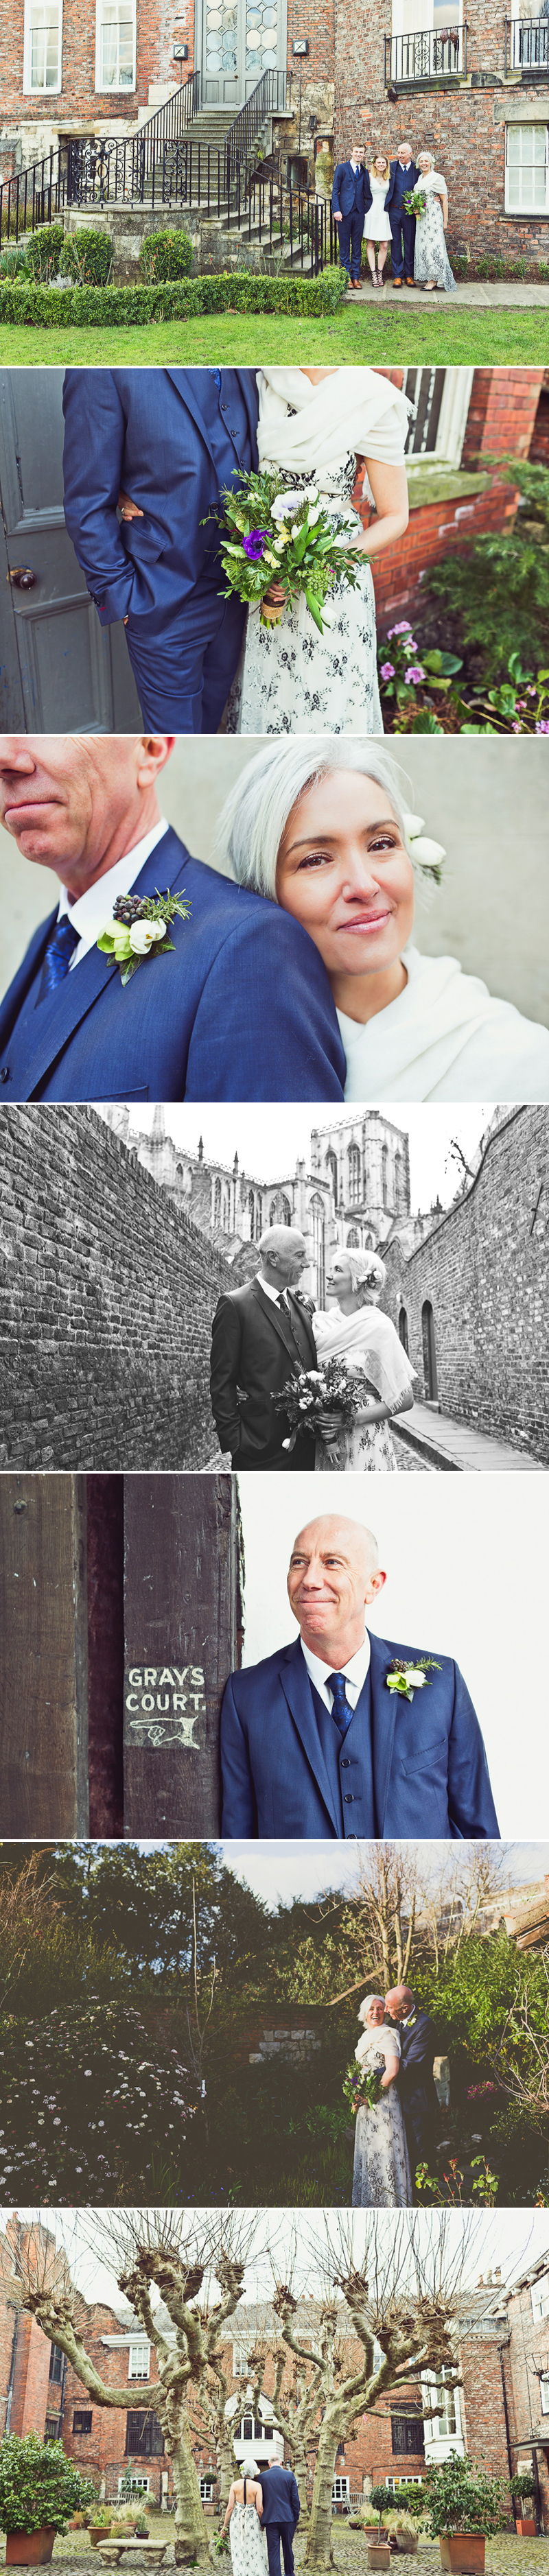 wedding-venues-in-york-grays-court-chic-intimate-wedding-005